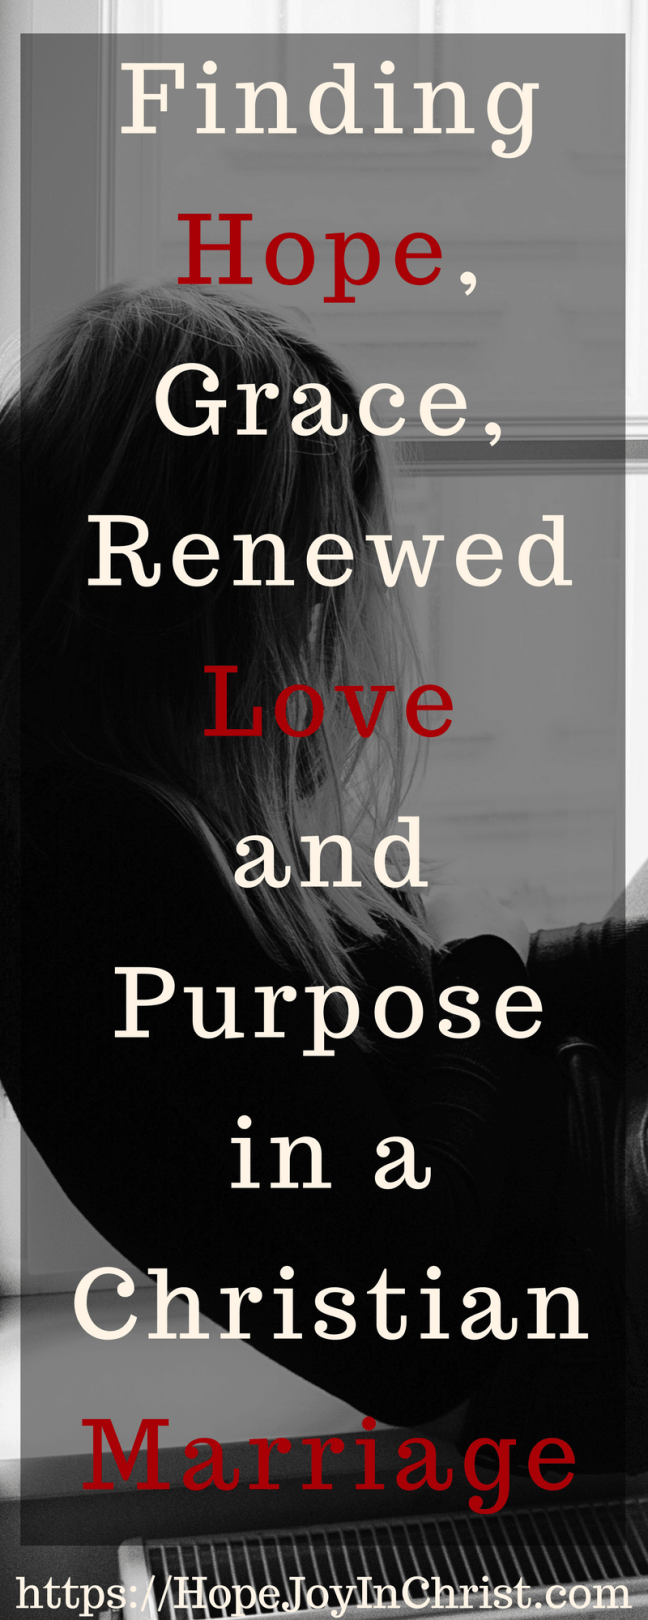 Finding Hope, Grace, Renewed Love and Purpose in a Christian Marriage PinIt ( #ChristianMarriageAdvice #biblicalMarriage #ChristianMarriage #RelationshipHelp #FindingHopeandJoyinMyMarriage #ReclaimingHopeandJoy #ChristianLiving)